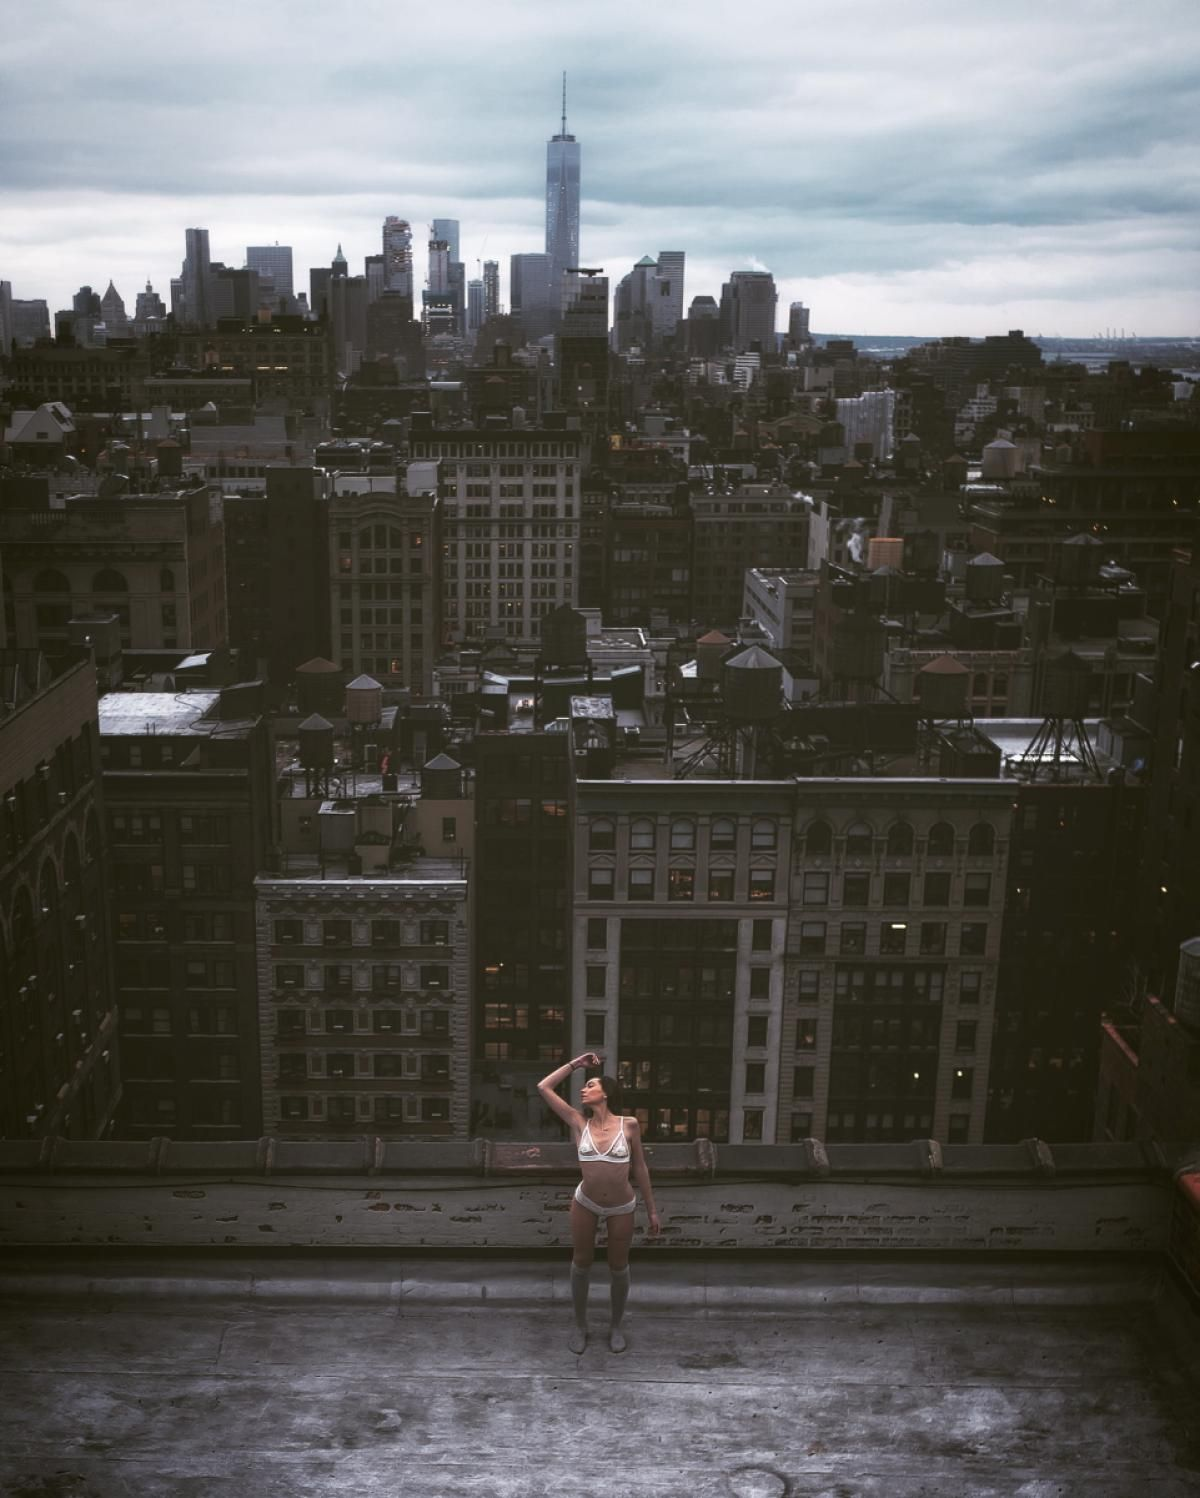 Standing before Downtown Manhattan in line with the Freedom Tower, a model appears at one with the city as she strikes a pose in just her lingerie in this brave and powerful shot featured in Mar Shirasuna's photo series.